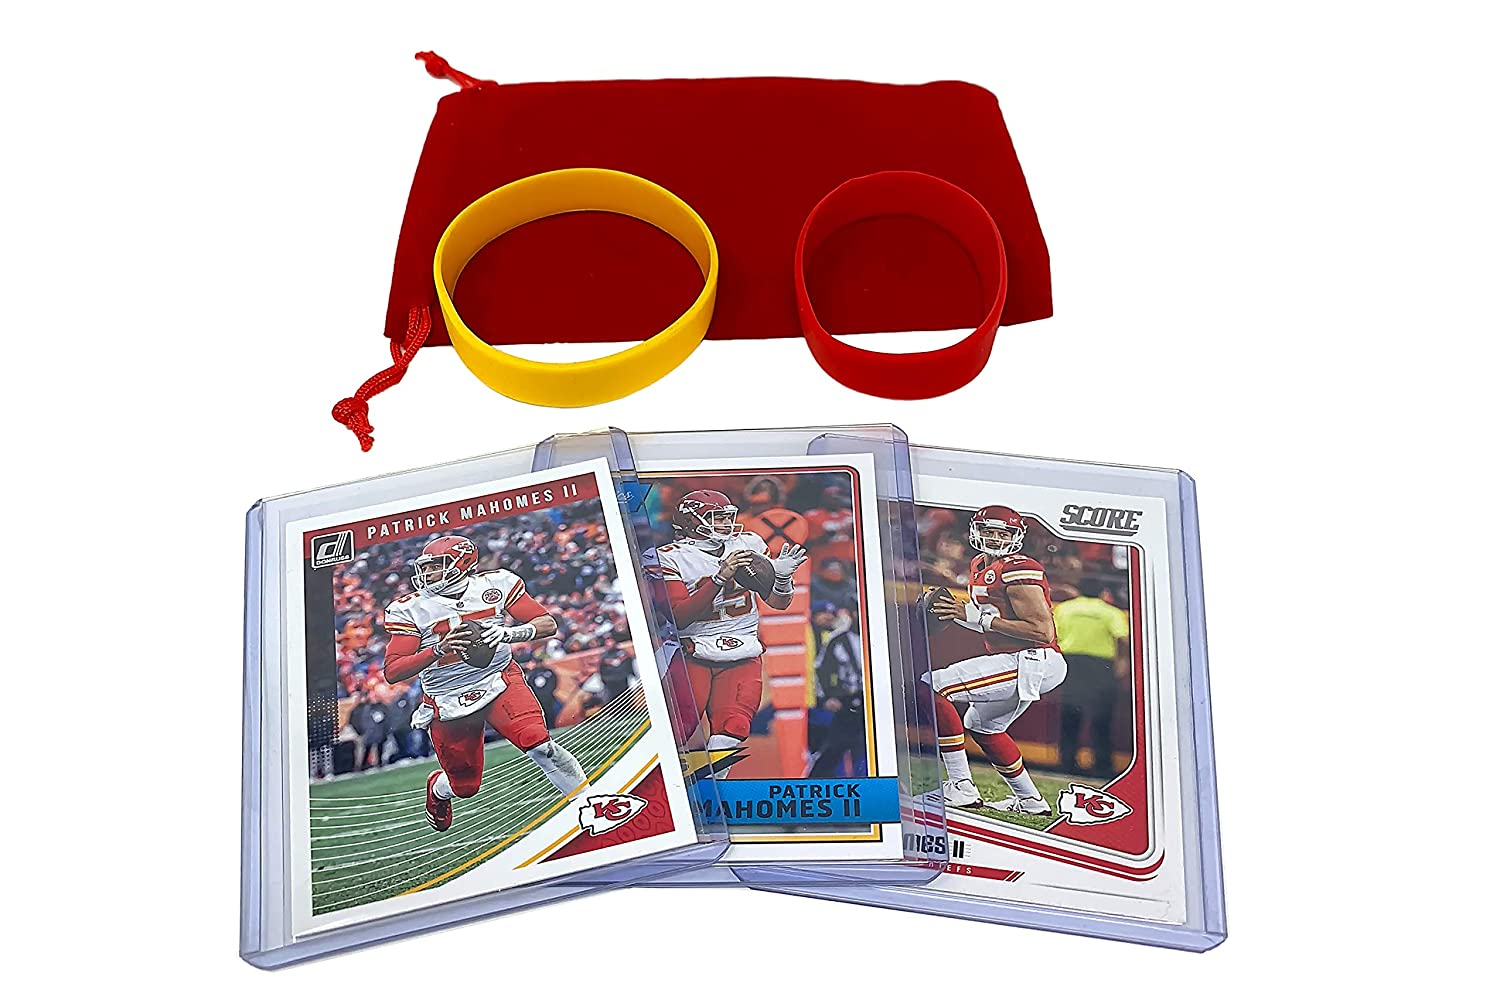 Patrick Mahomes Football Cards (3) Assorted Bundle - Kansas City Chiefs Trading Card Gift Set Panini Bowman Topps